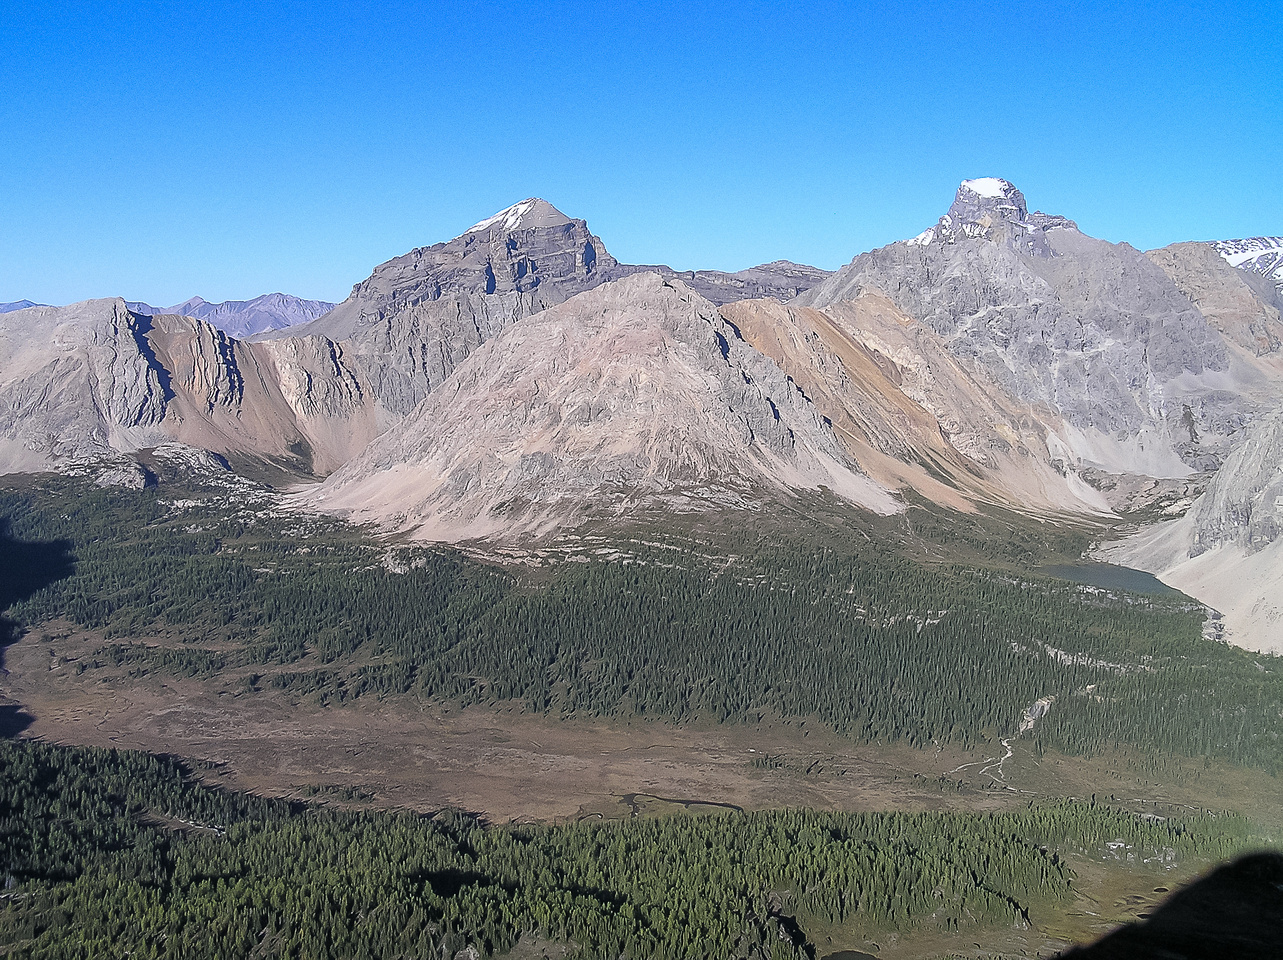 The great view of Douglas (L) and St. Bride (R) is what makes Brachipod worth an ascent.